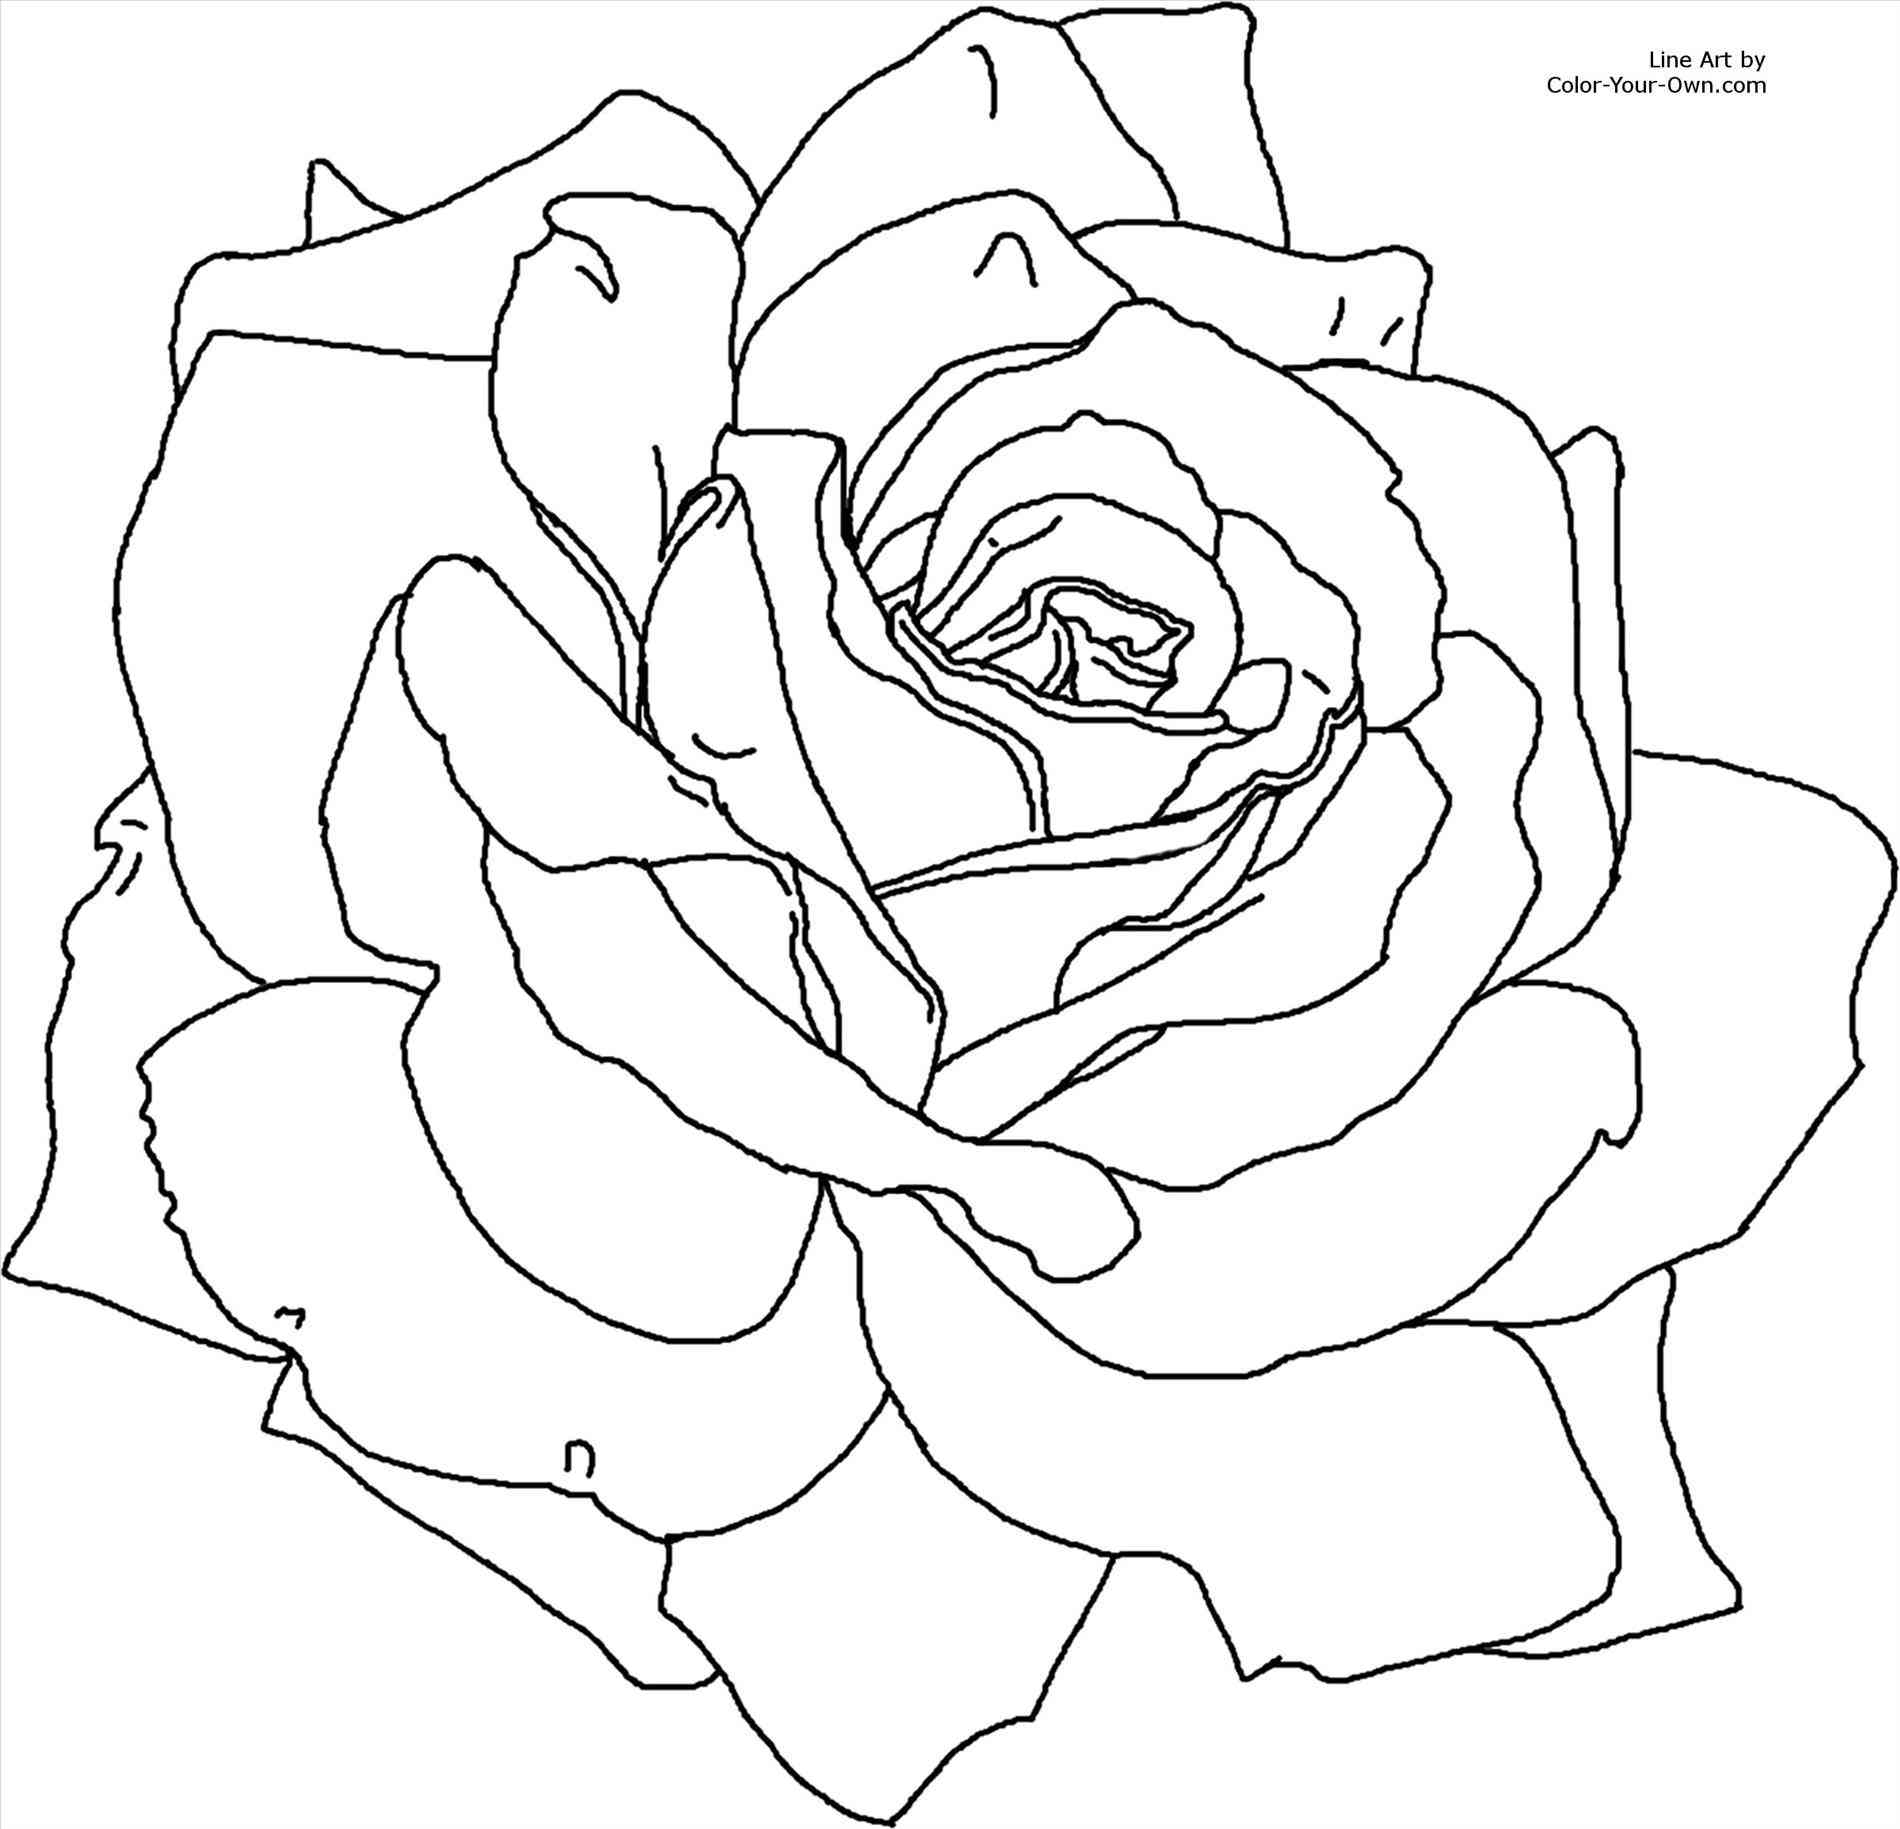 1900x1829 Realistic Drawing Knumathise Rose With Thorns Outline Realistic